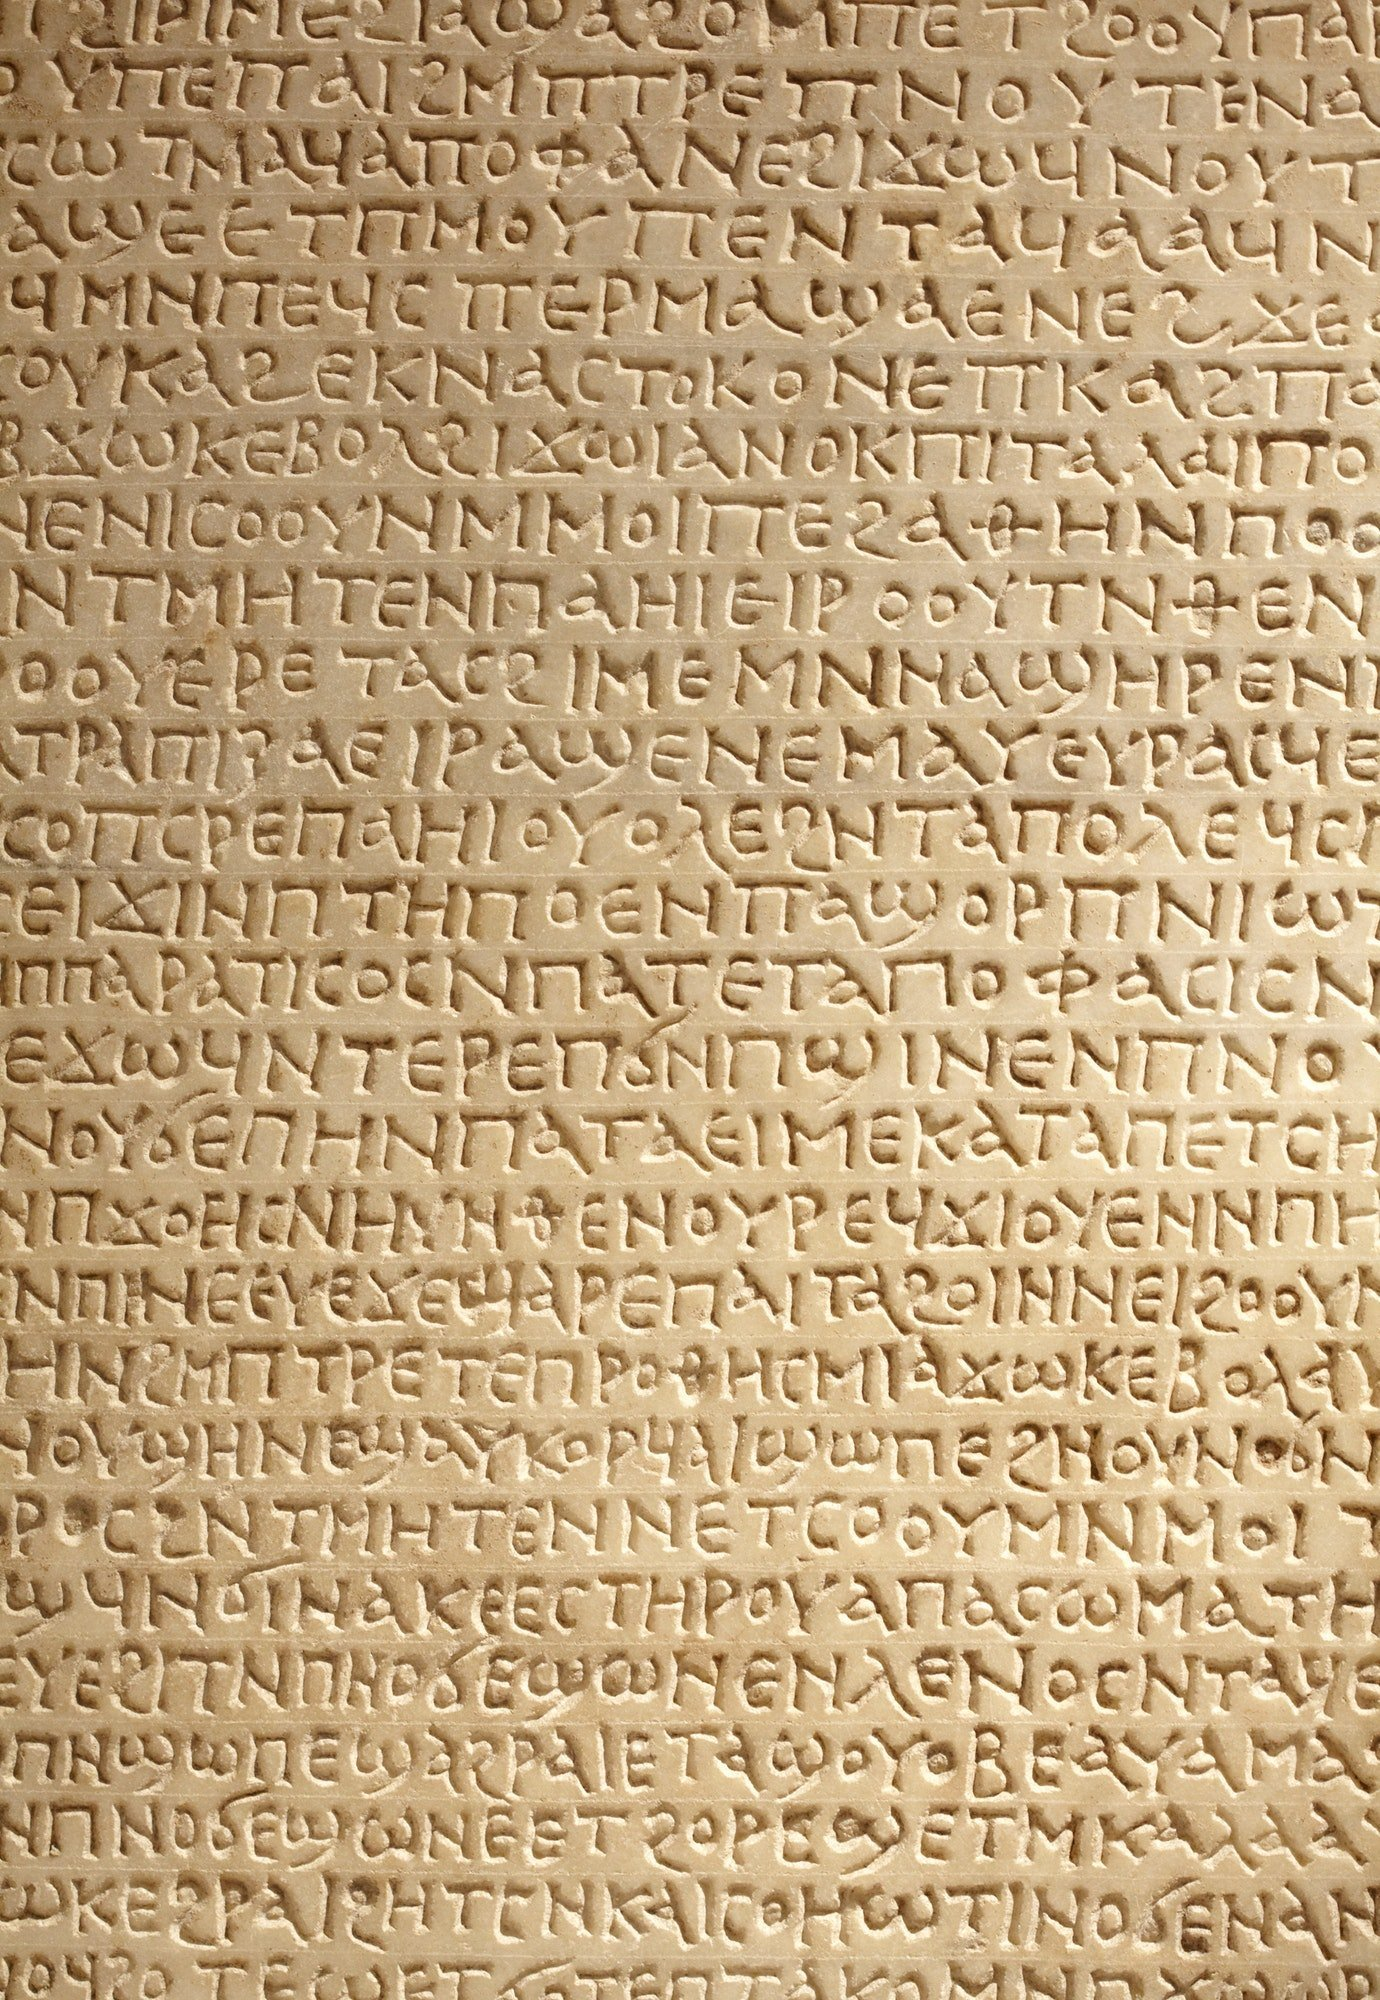 Ancient greek writing on stone